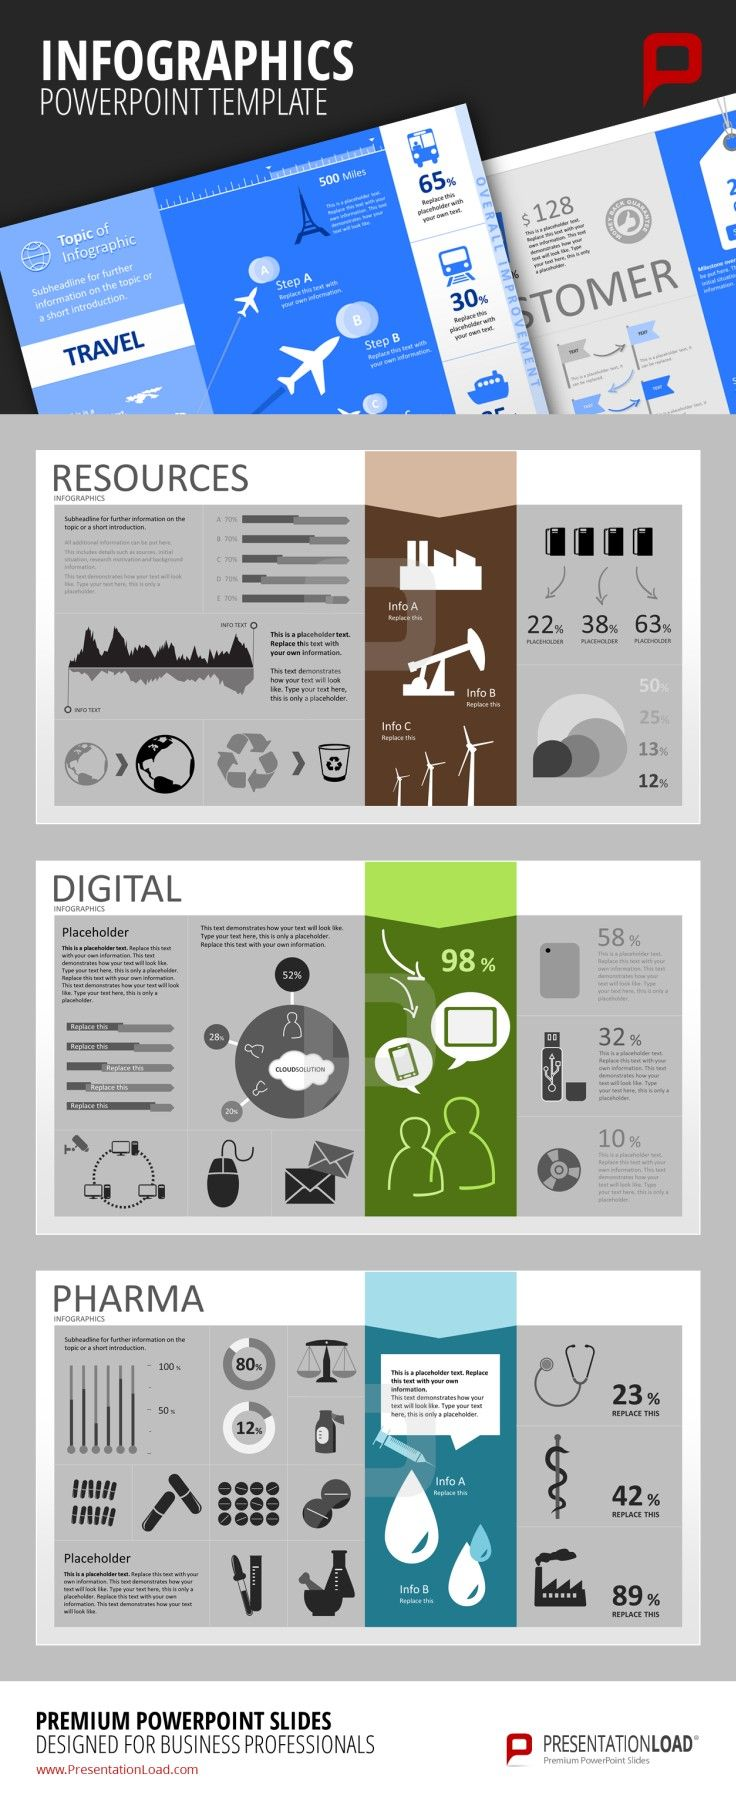 Infographic PowerPoint Templates Use our templates to provide your audience with useful infographics about resources like raw materials, digital infrastructure like cloud solutions or pharma related topics like the use of medication. #presentationload www.presentationl...